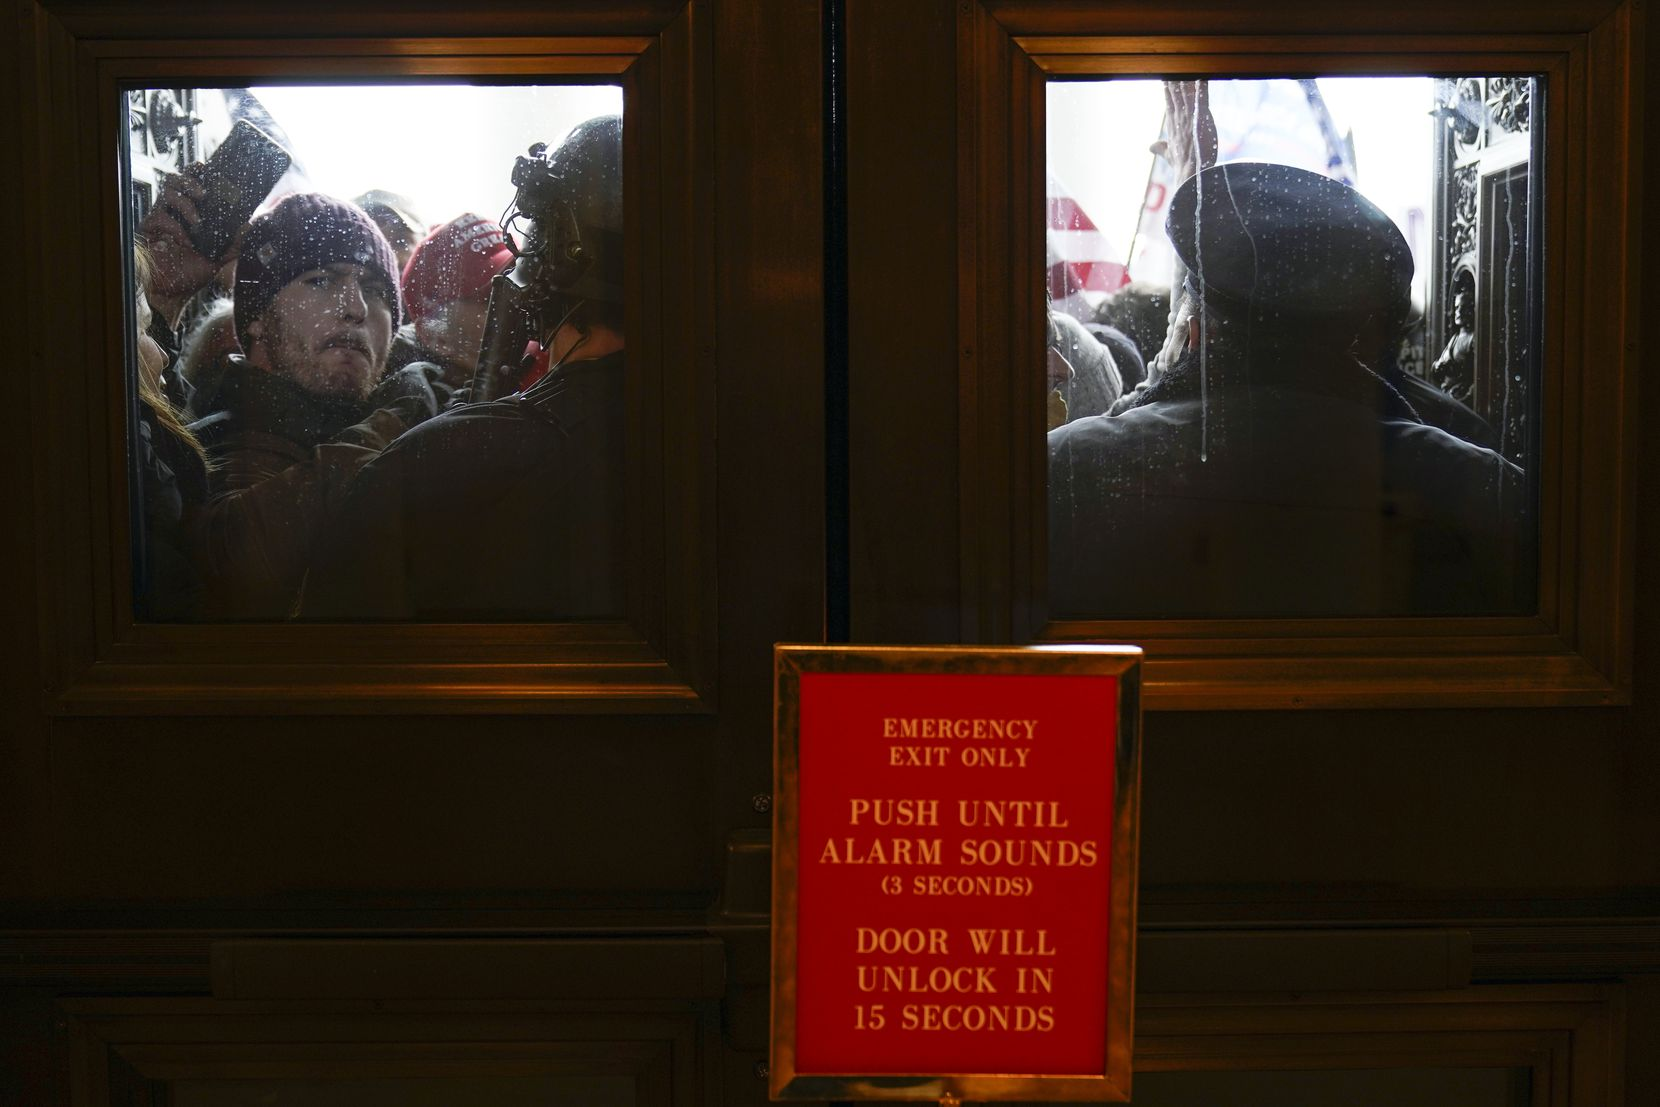 U.S. Capitol Police try to hold back protesters outside the east doors to the House side of the U.S. Capitol, Wednesday, Jan 6, 2021.